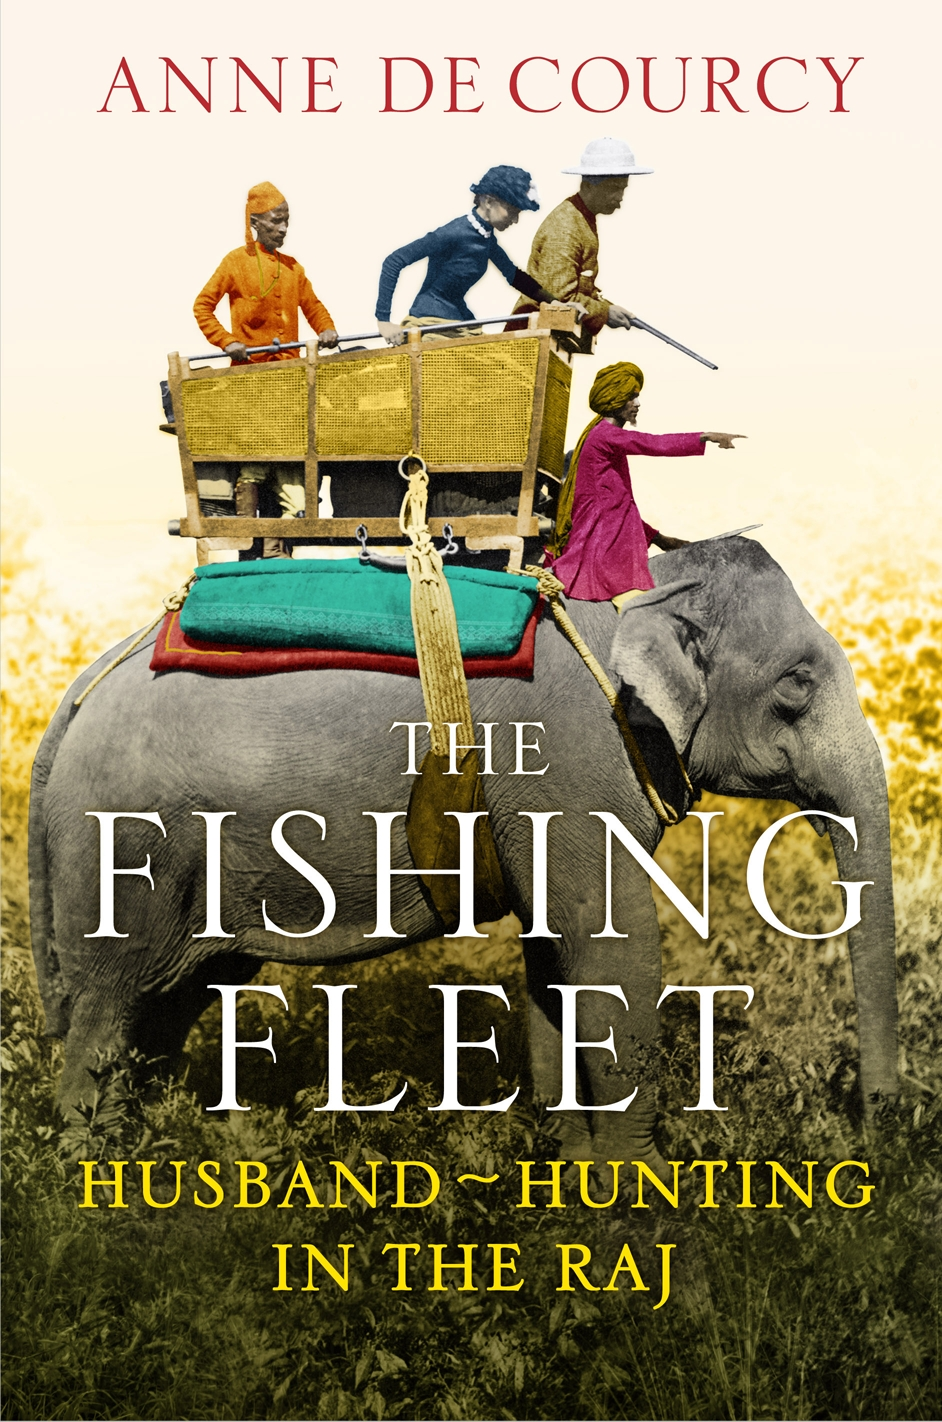 THE FISHING FLEET: HUSBAND-HUNTING IN THE RAJ  Historical, 336 pages  Weidenfeld & Nicolson, July 2012  7 weeks in the top UK bestseller lists. Unpublished memoirs, letters and diaries rescued from attics help this sparkling narrative bring a forgotten era vividly to life.